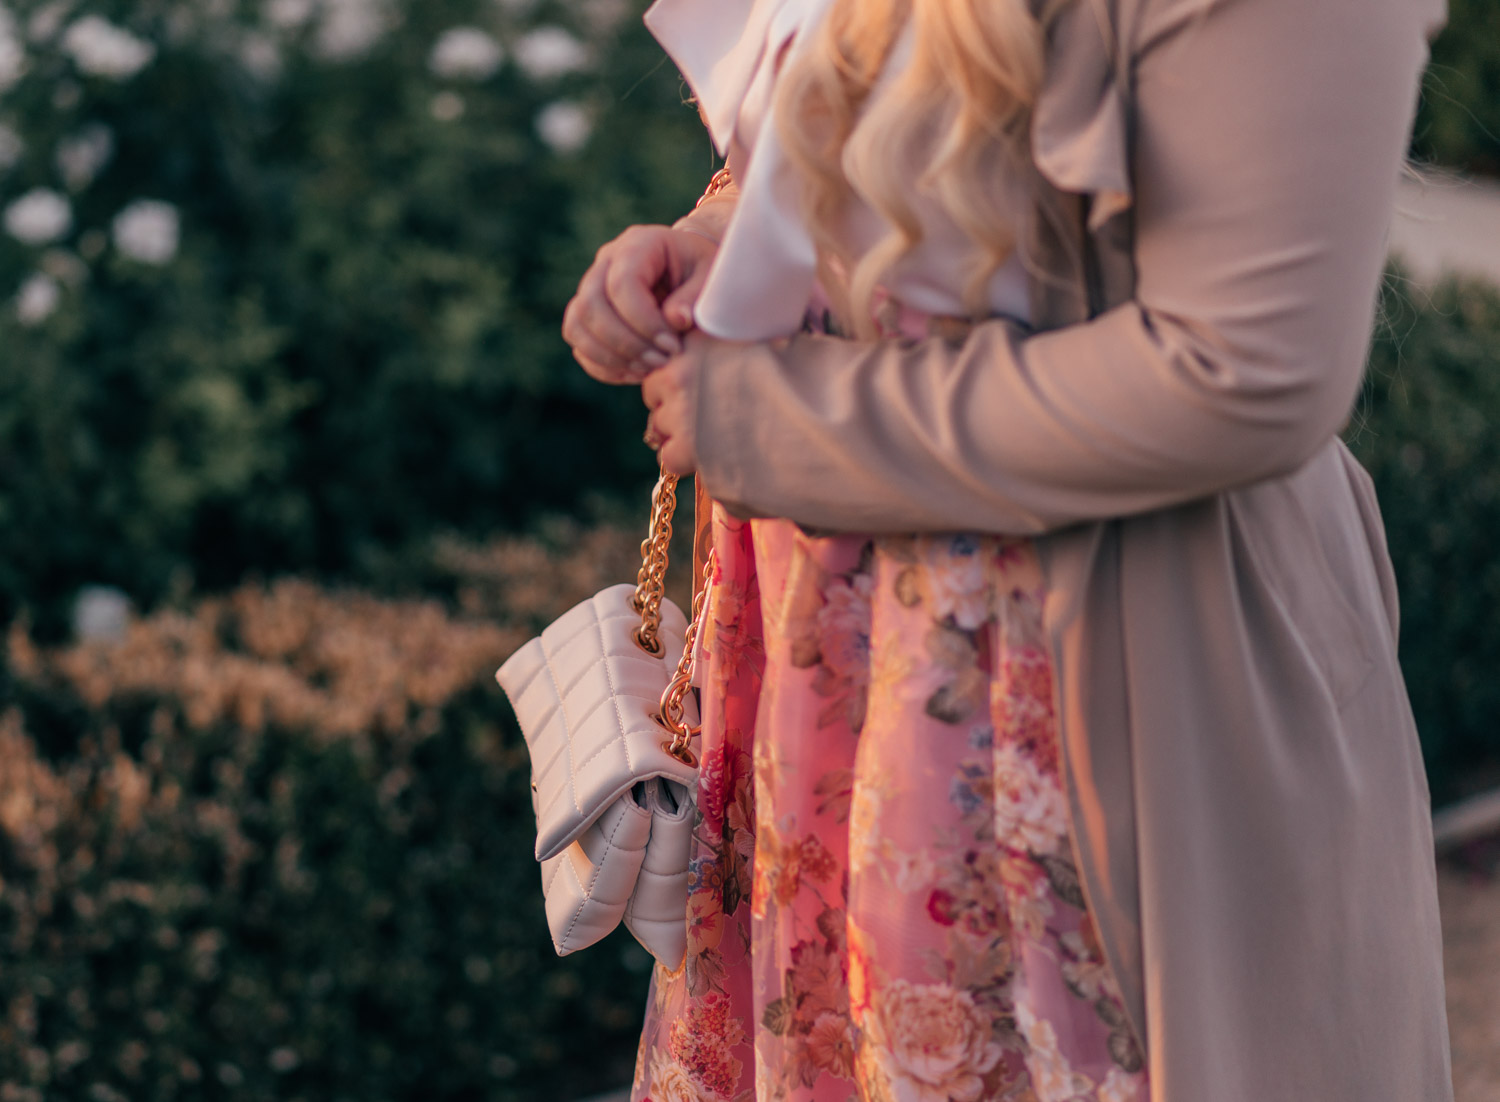 Feminine fashion blogger Elizabeth Hugen of Lizzie in Lace shares How to Style a Classically Feminine Outfit including a floral Chicwish skirt and House of Want handbag